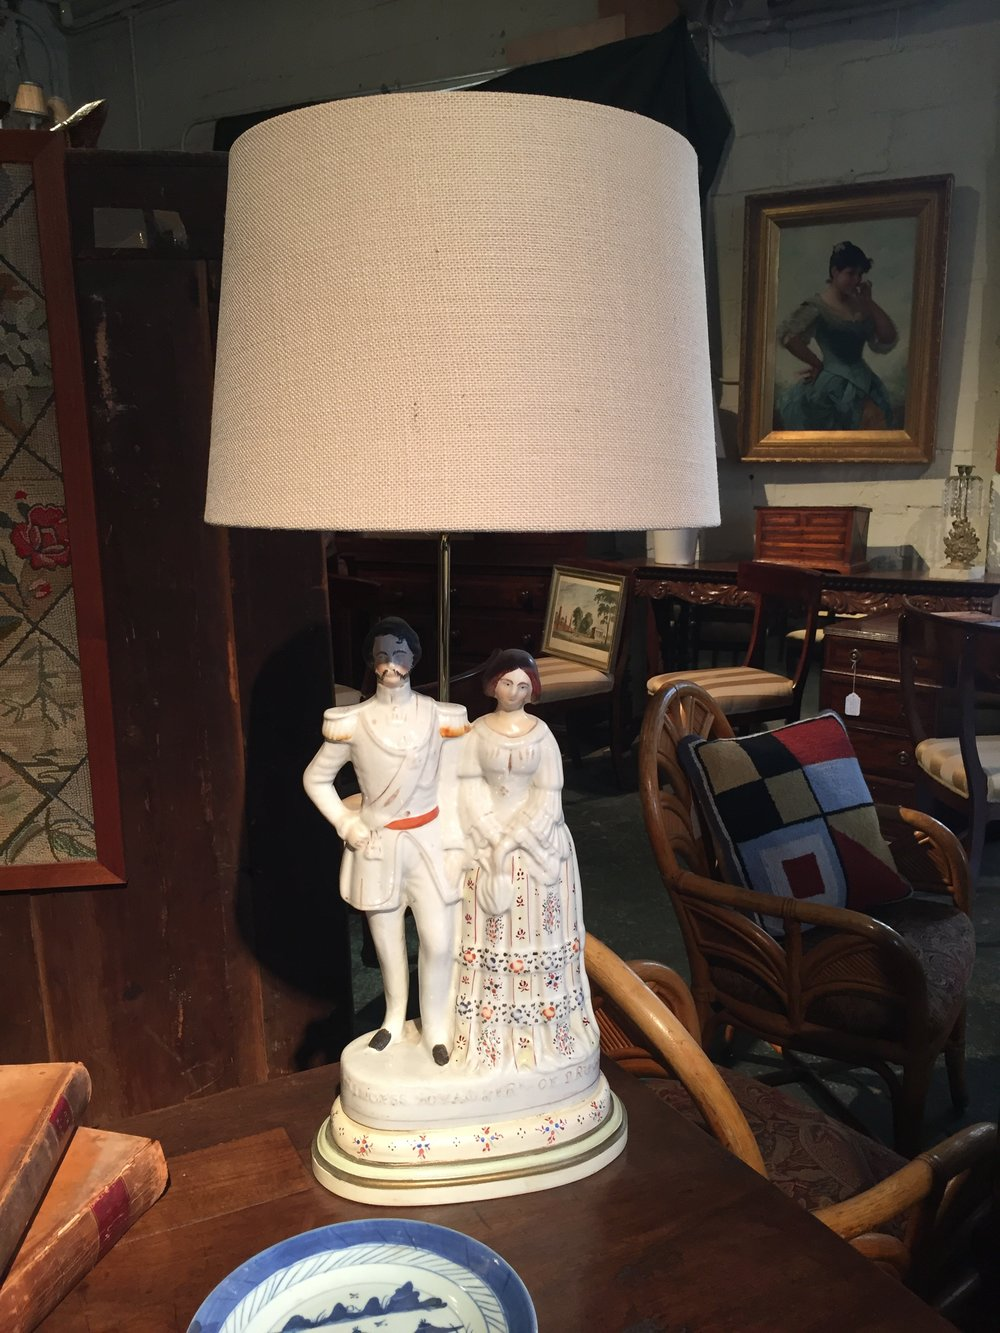 They have a pair of these Staffordshire lamps which I think would be fun in a more eclectic room.